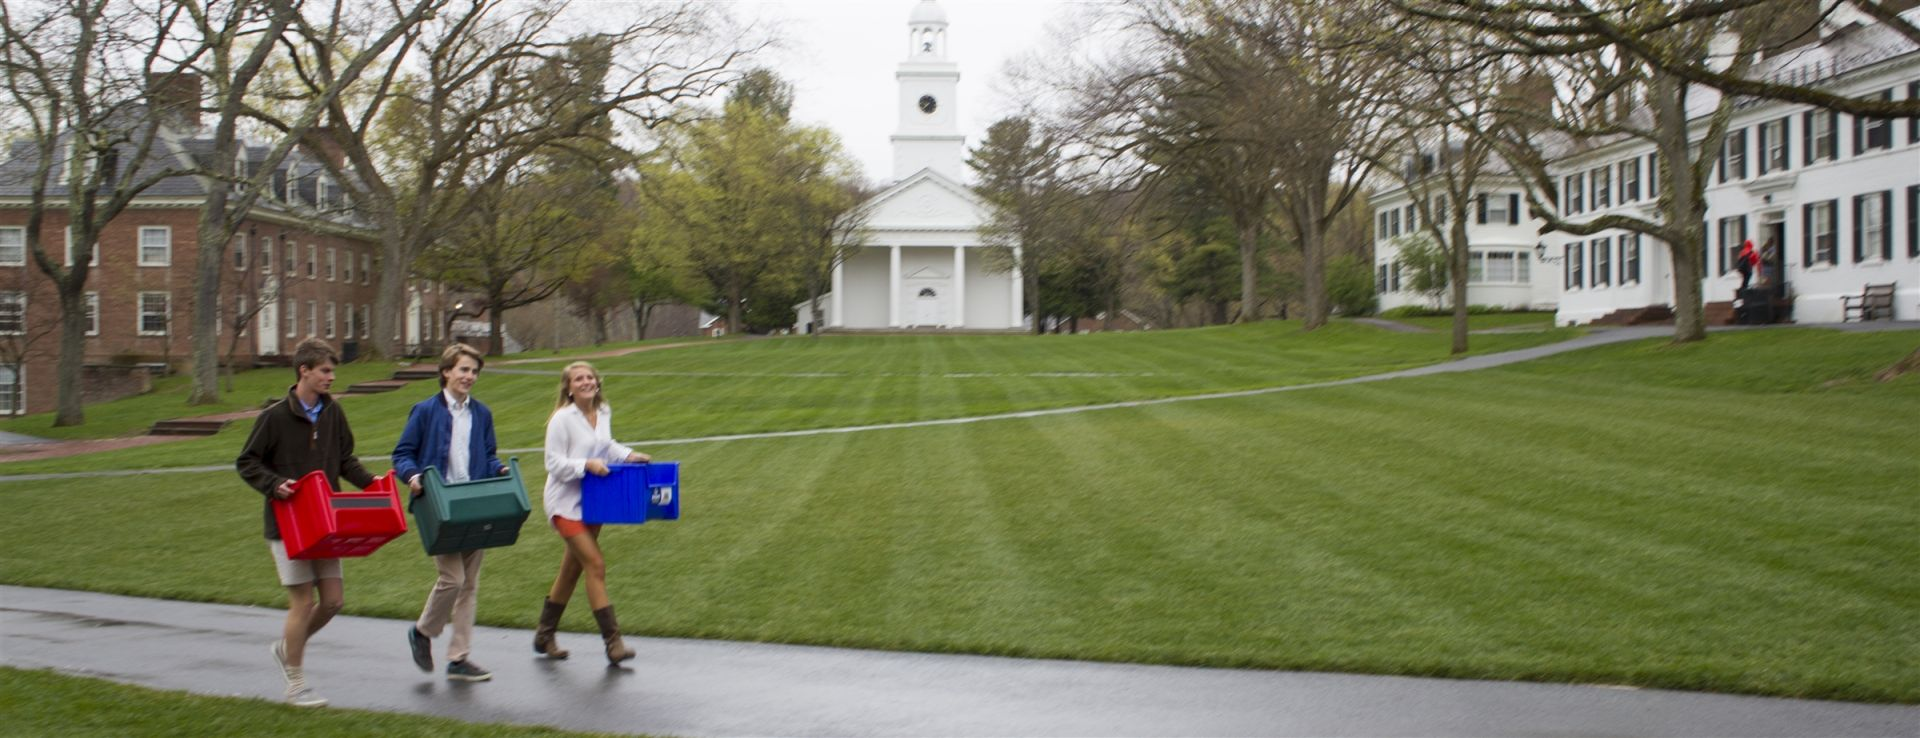 Students transport recycables during Community Service, a vital component to the Millbrook experience since the inception of the school in 1931.